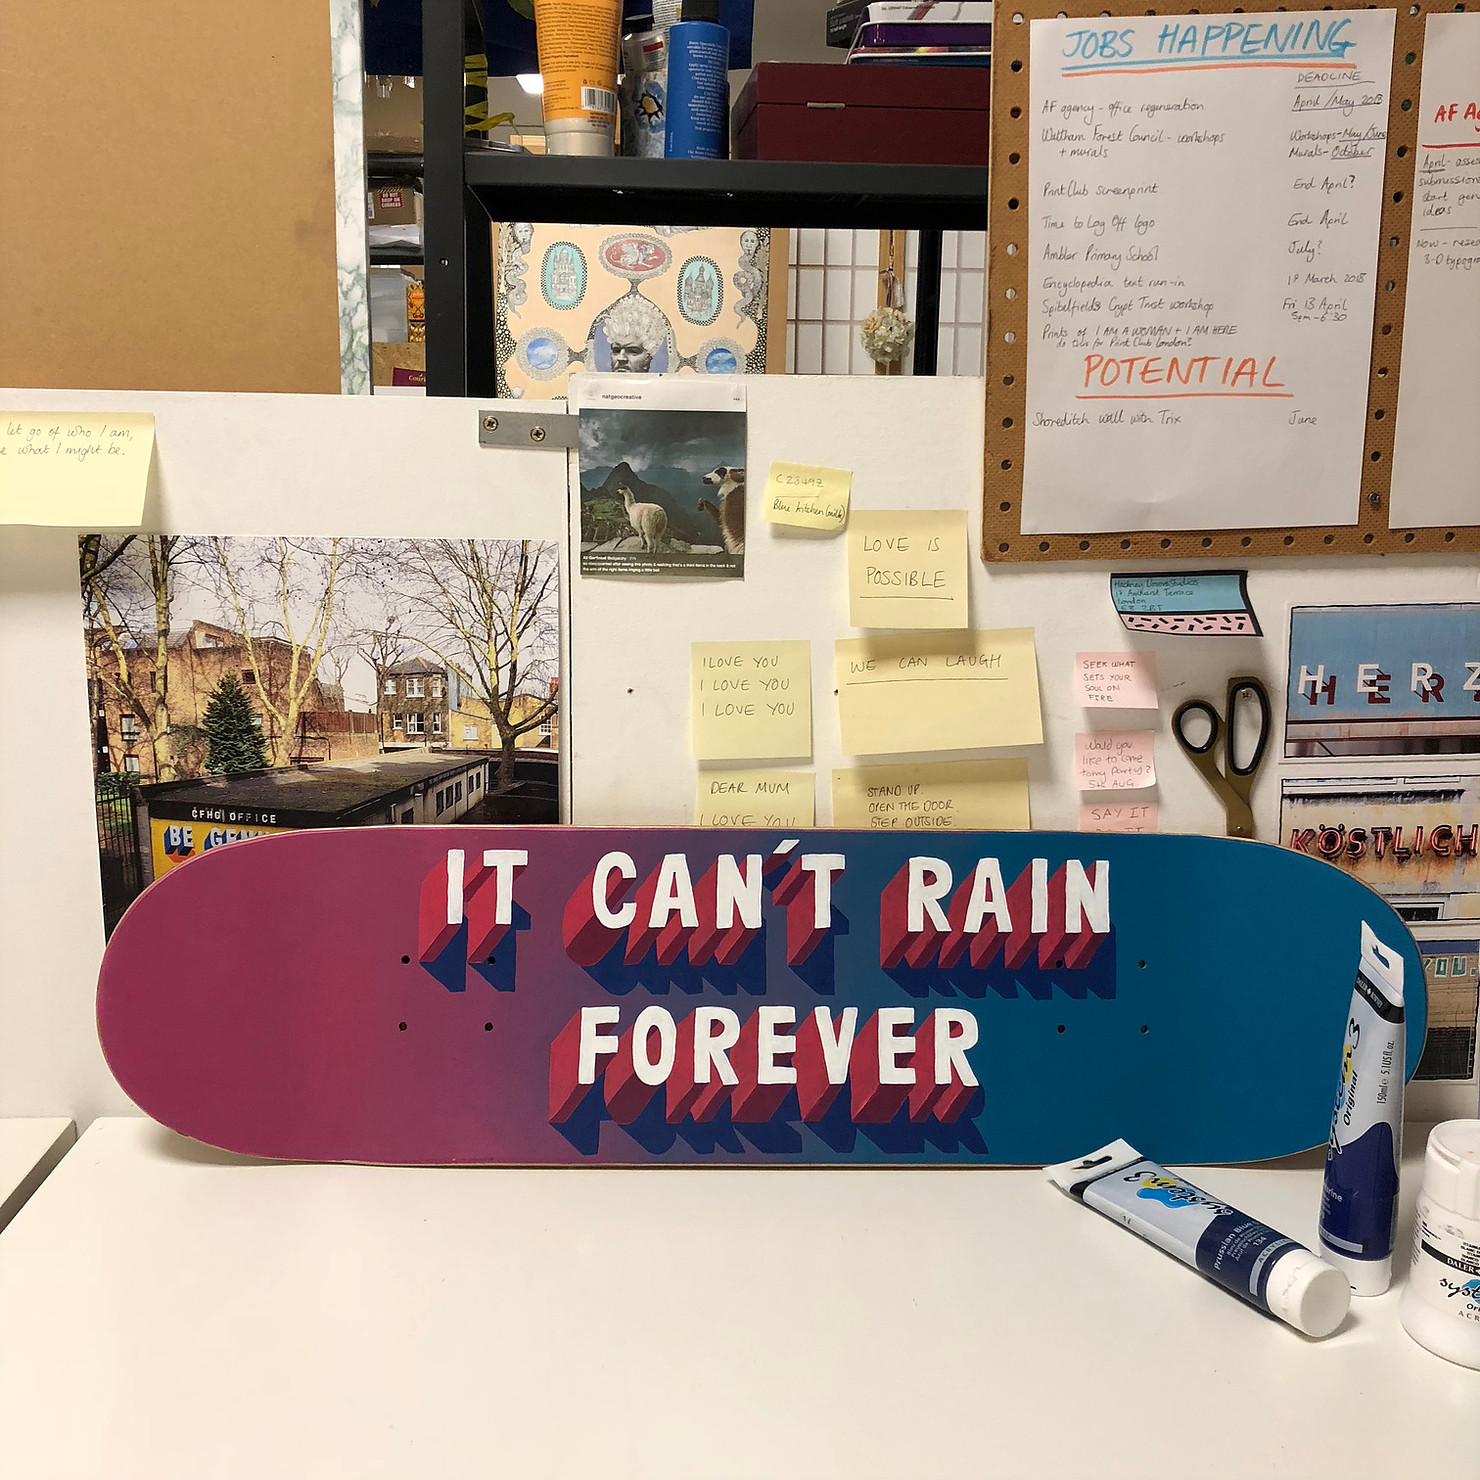 'It can't rain forever'